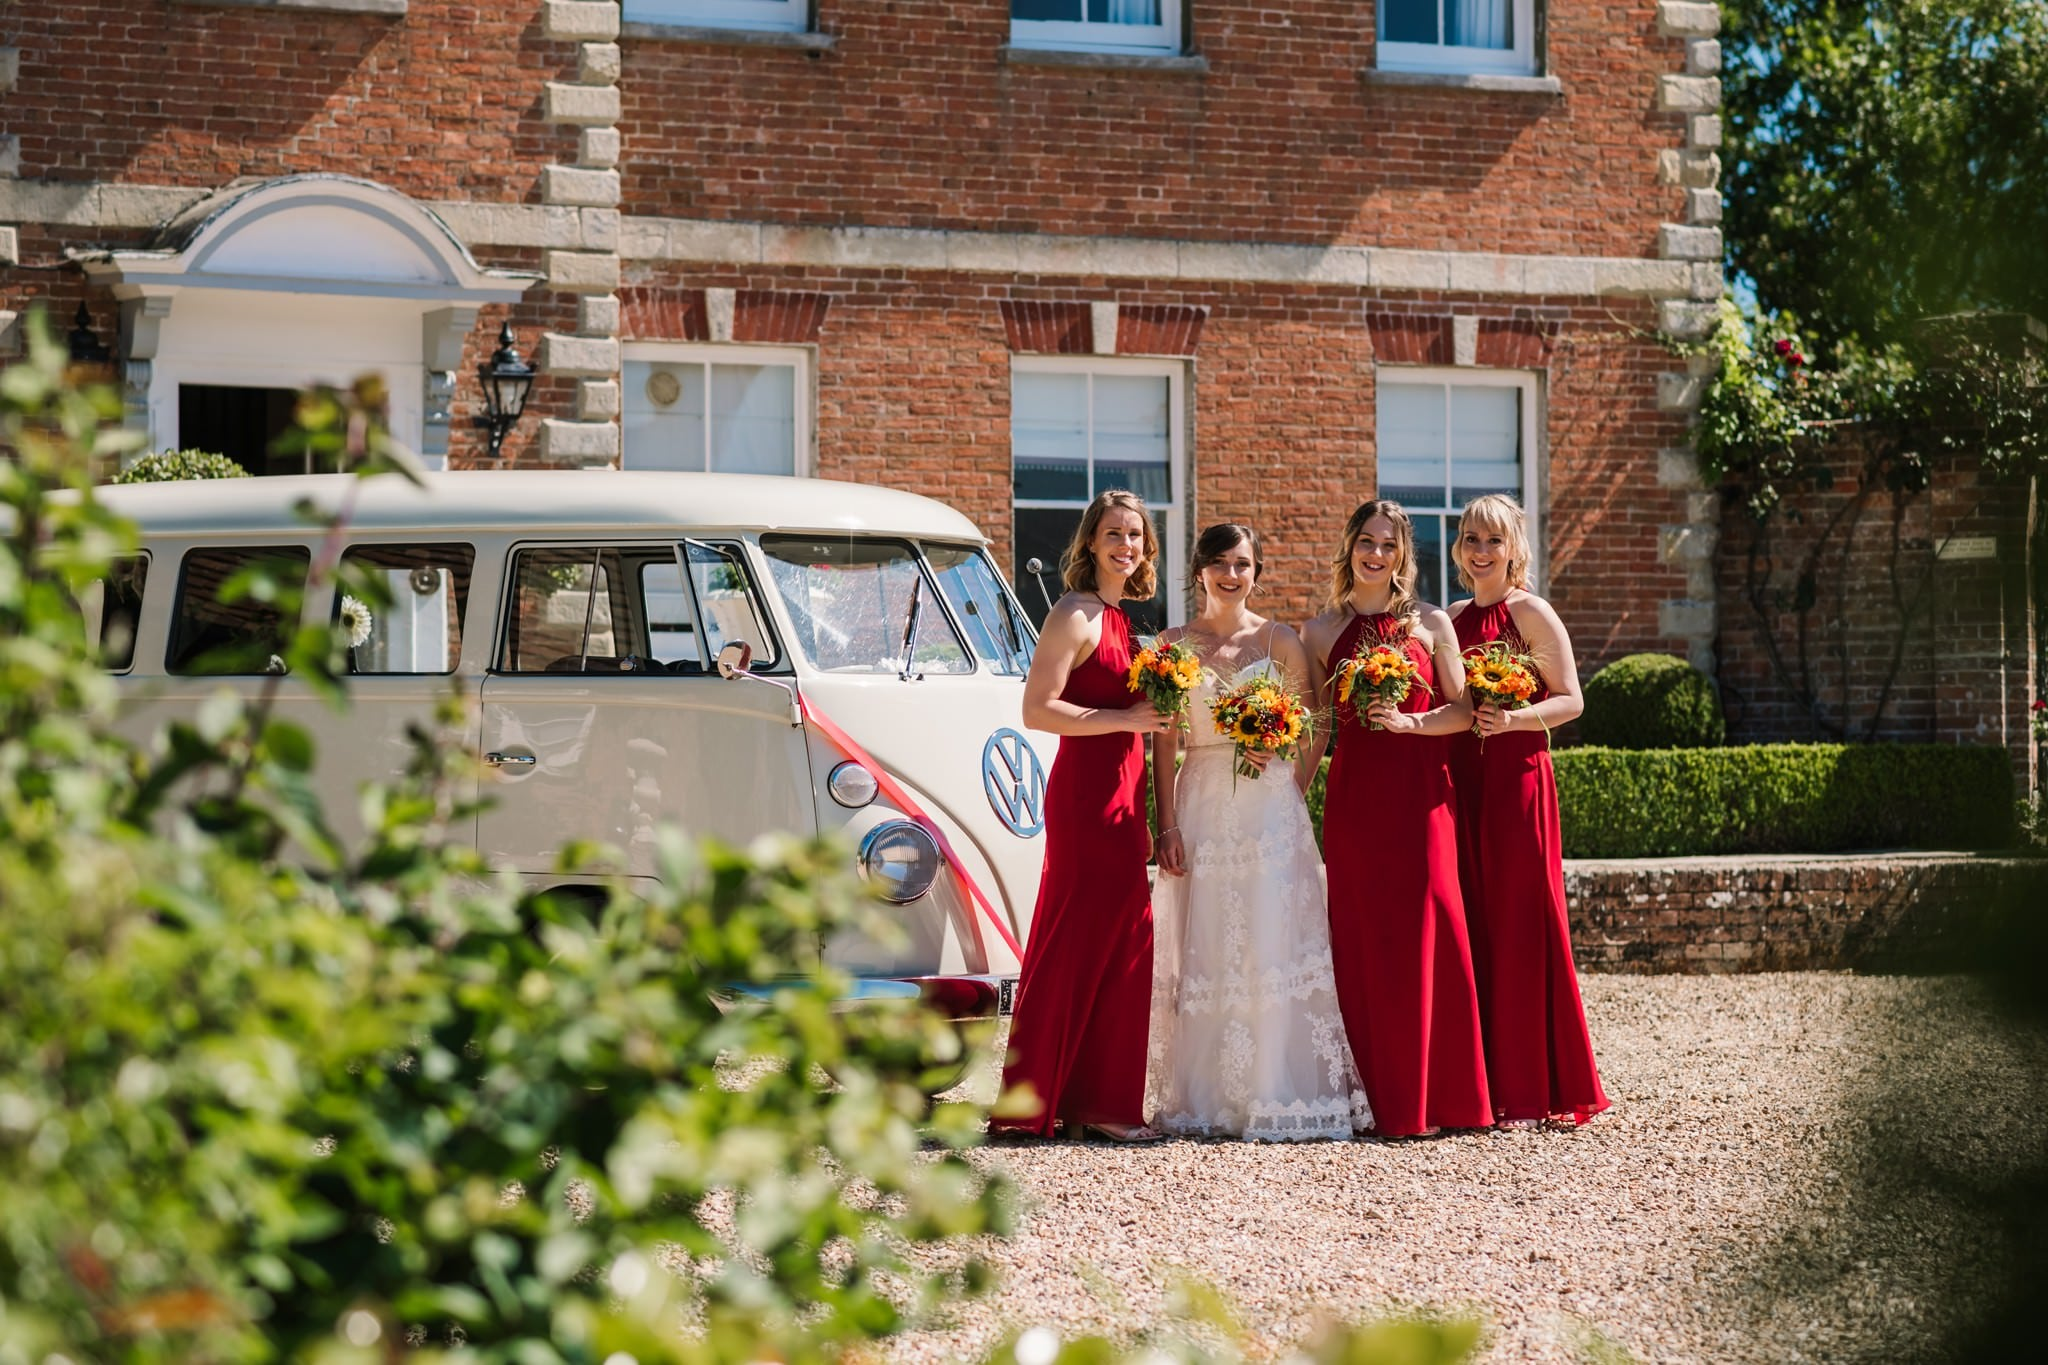 VW at Parley Manor Wedding